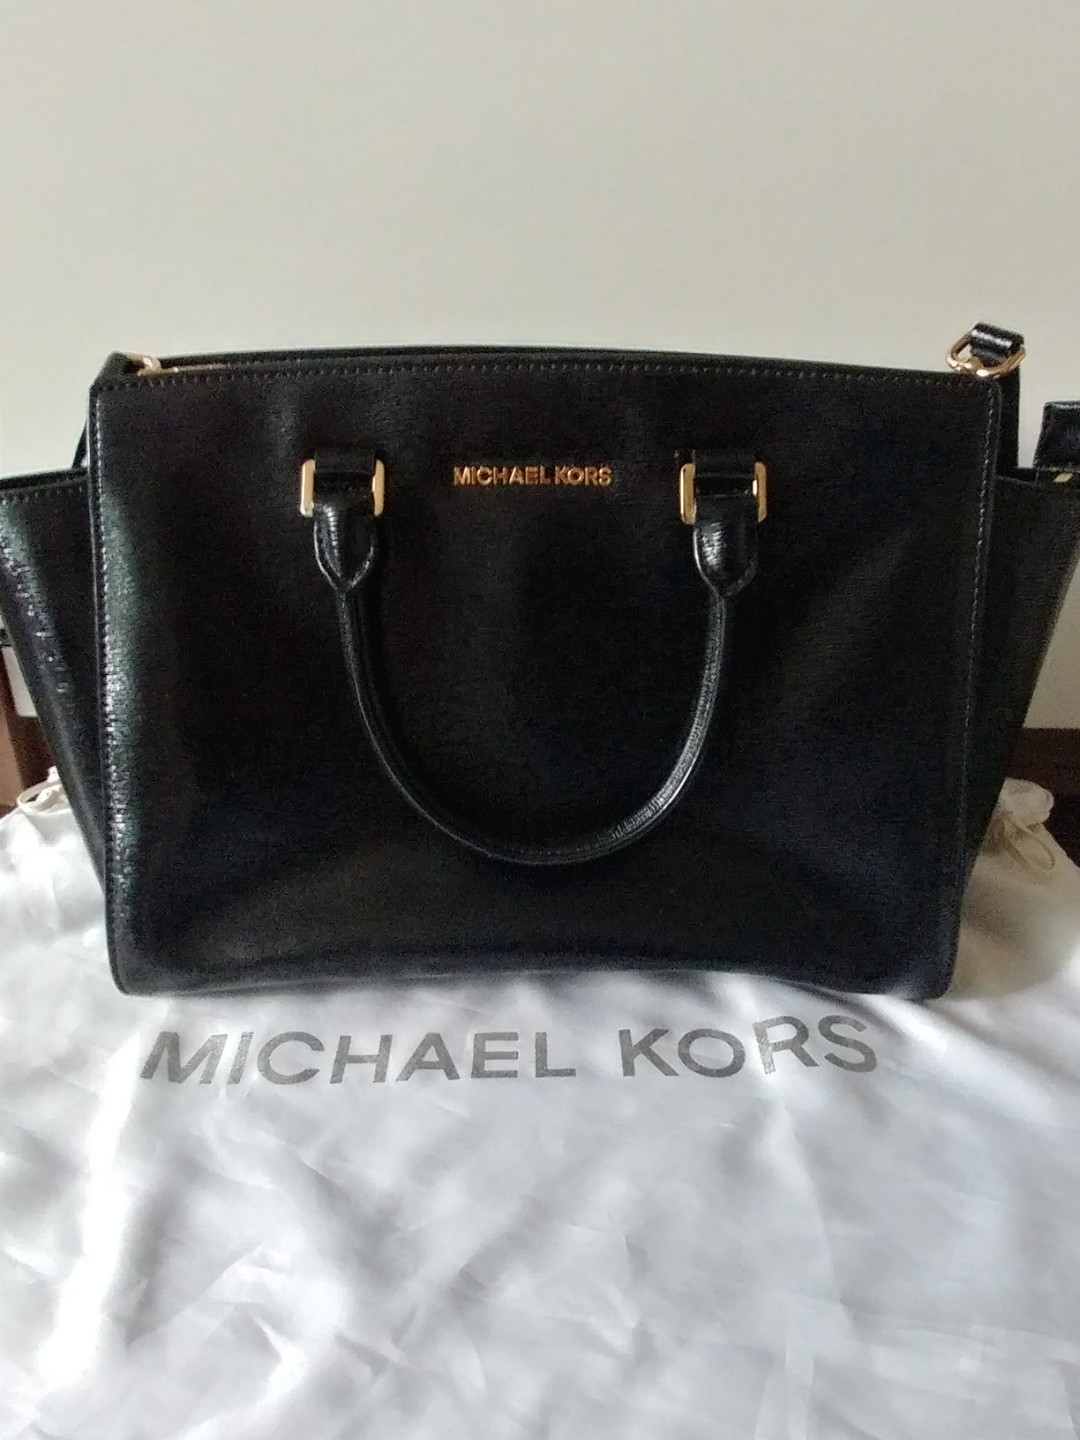 9625426c7ac5 Authentic Michael Kors Selma Large Black Patent Leather Satchel ...